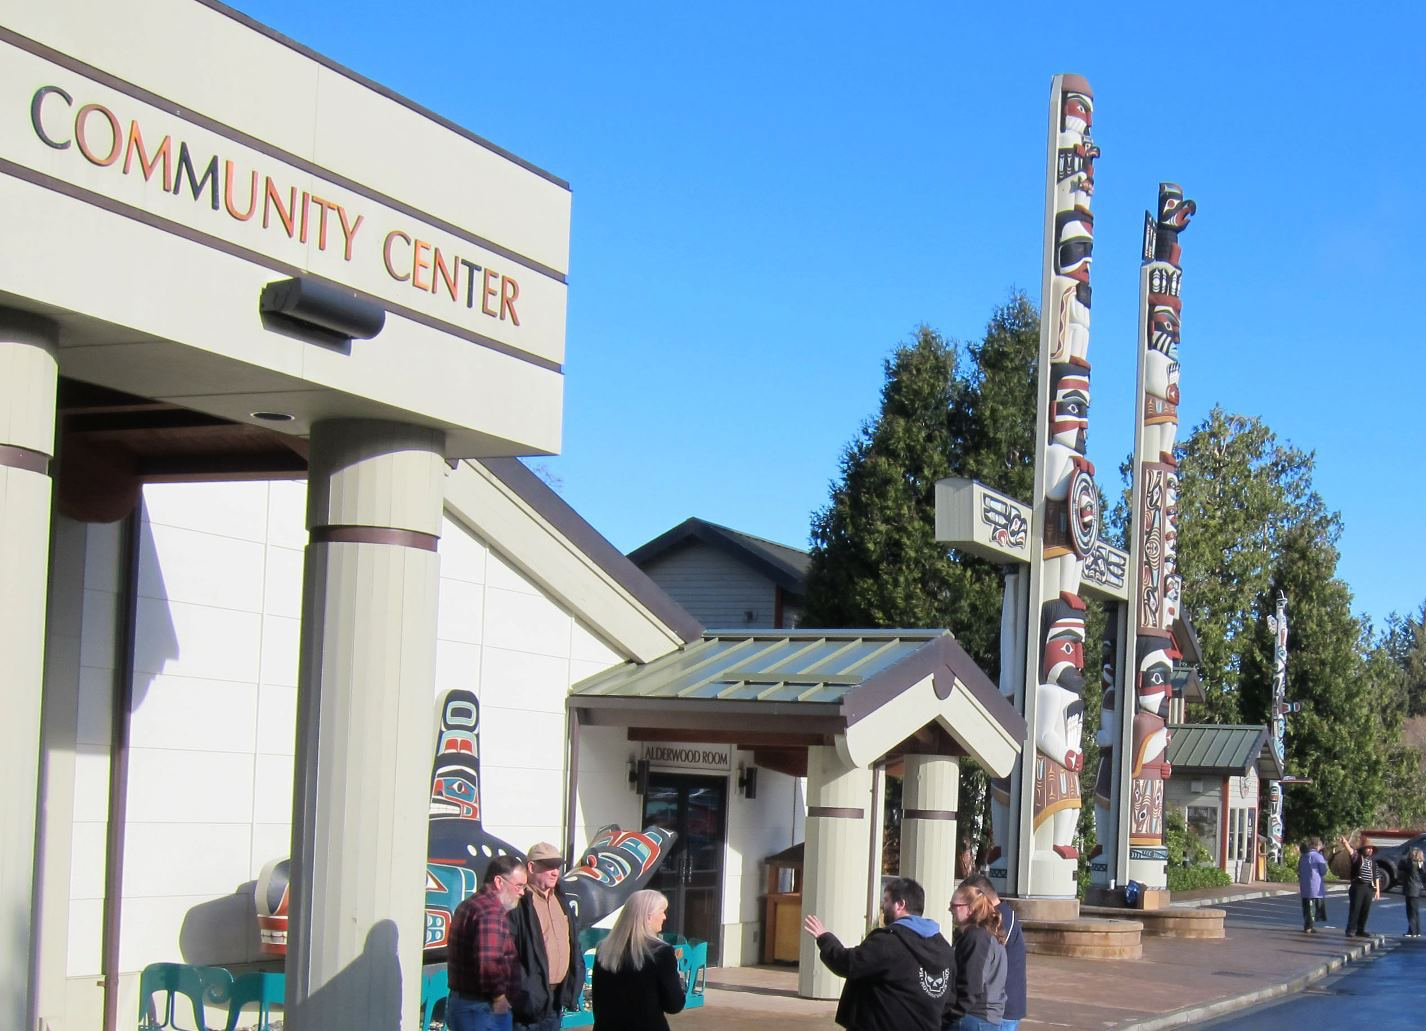 Jamestown S'Klallam Tribe is first to earn 'Bicycle Friendly' honor